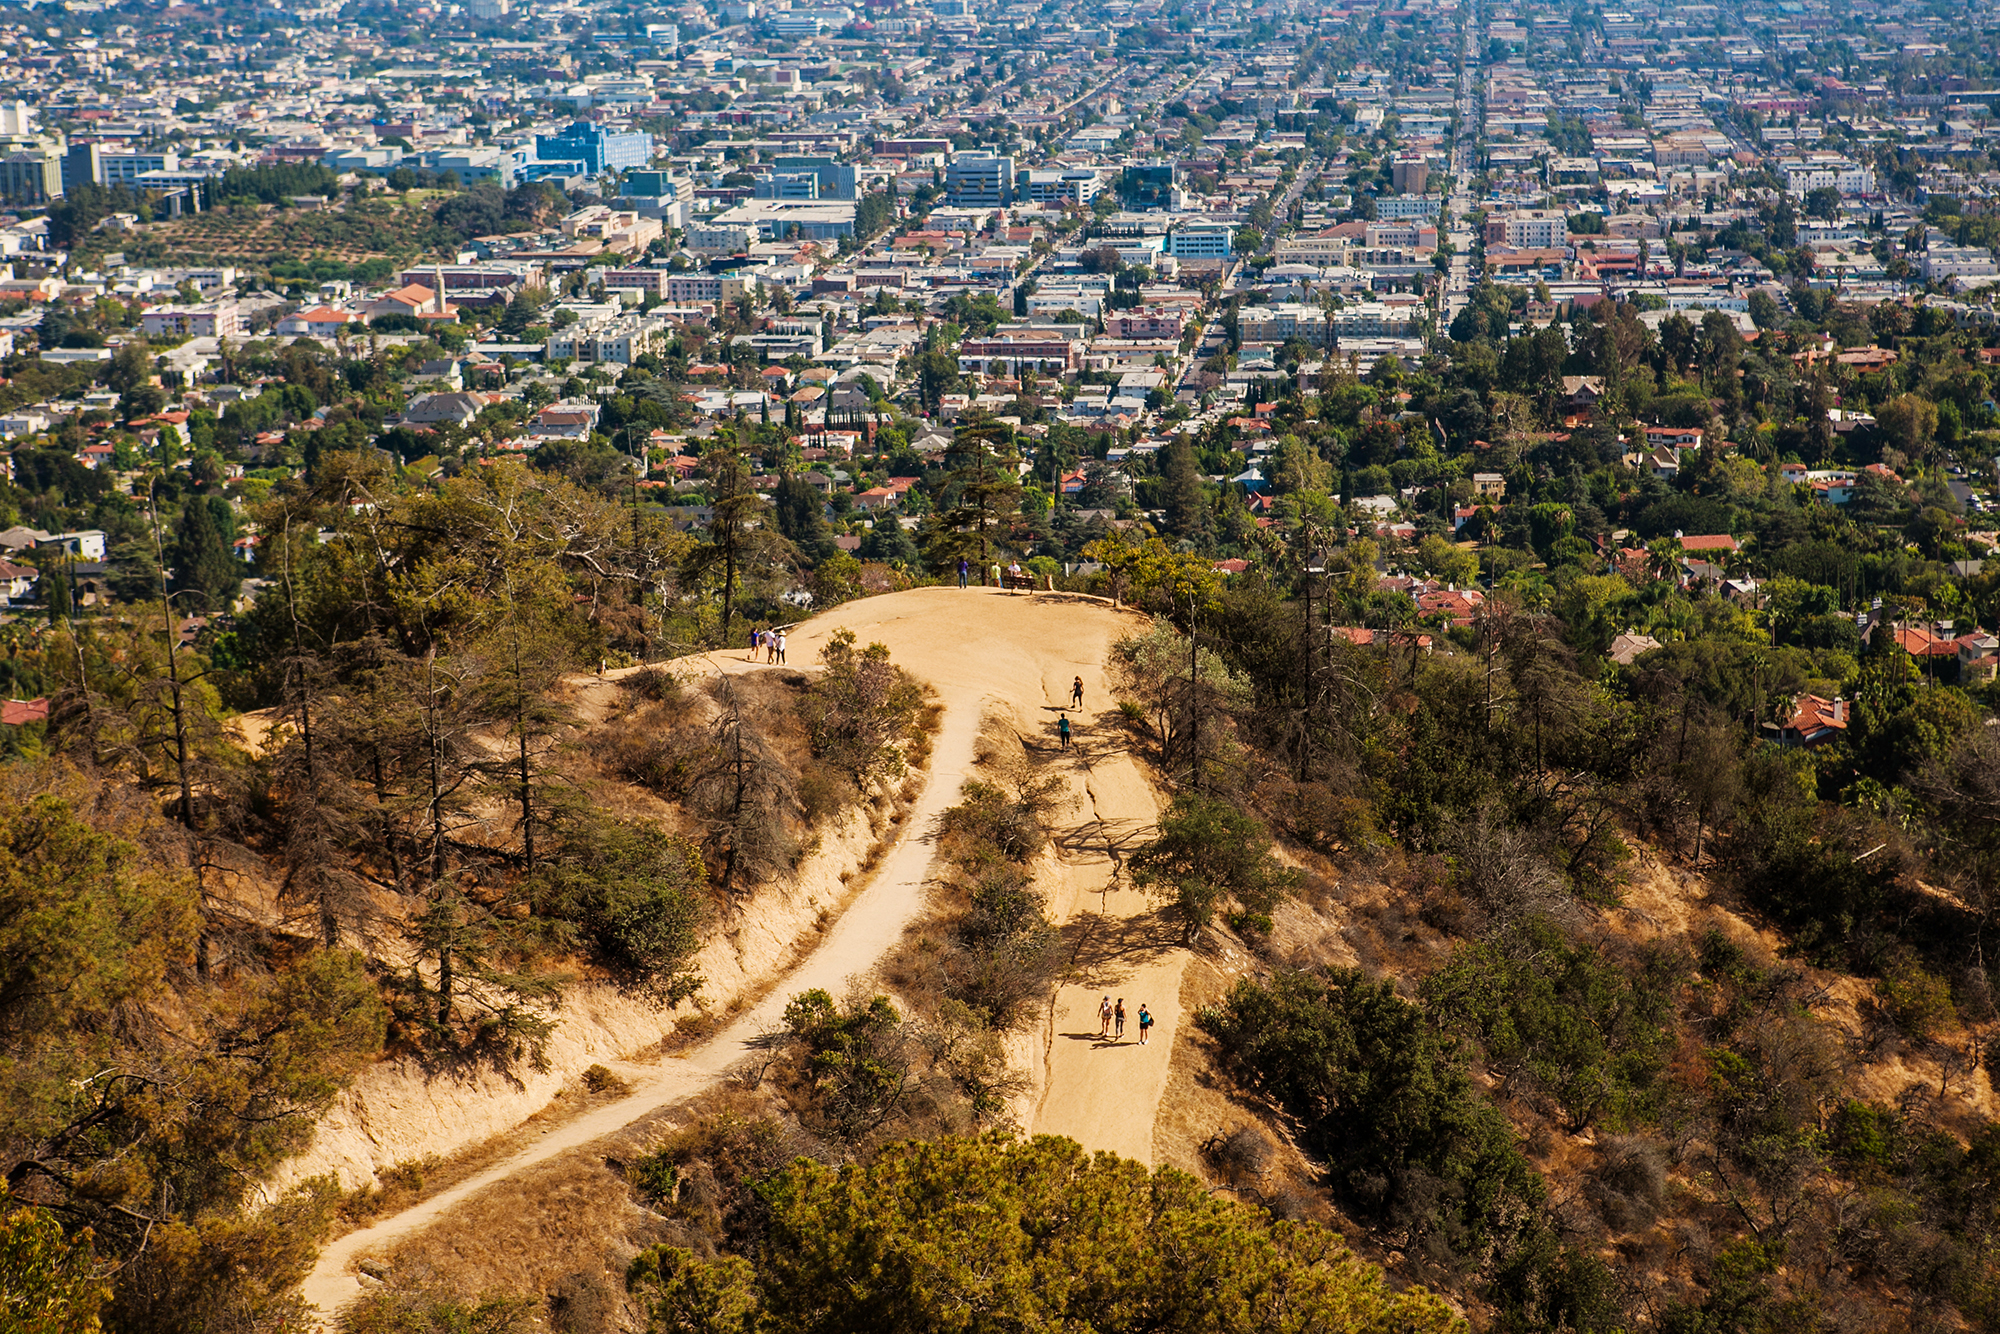 An aerial photo of a few hikers spread out on a winding trail The LA skyline is visible in the distance.